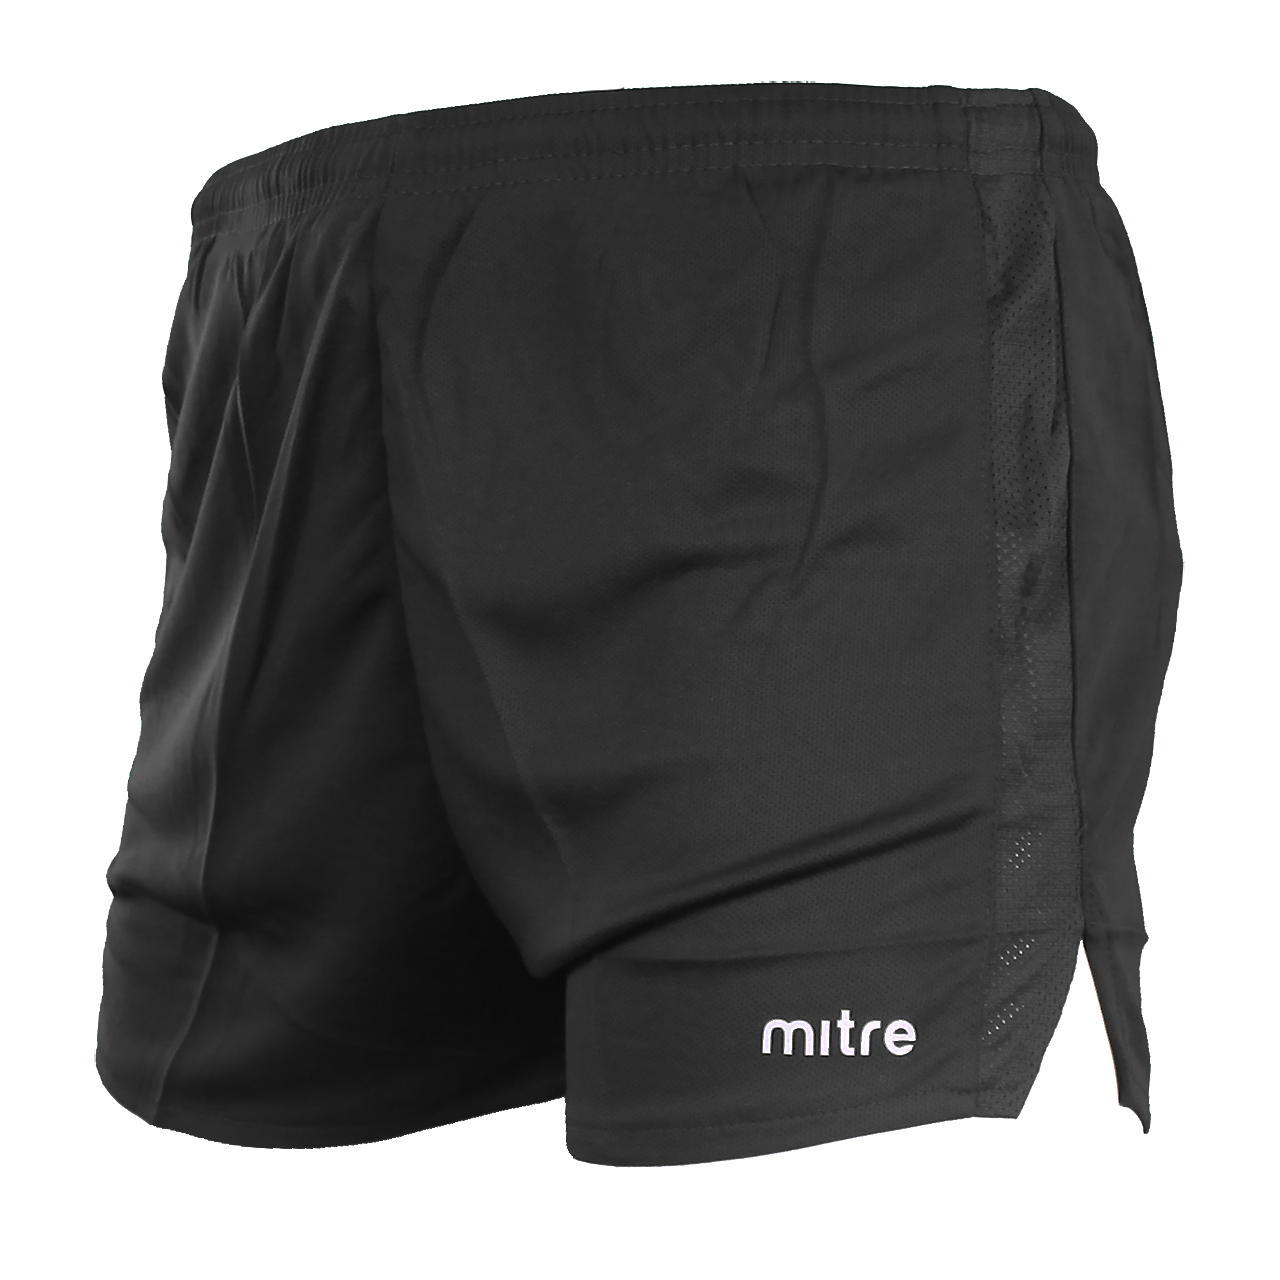 Maxicool Shorts [MRS402BLK]